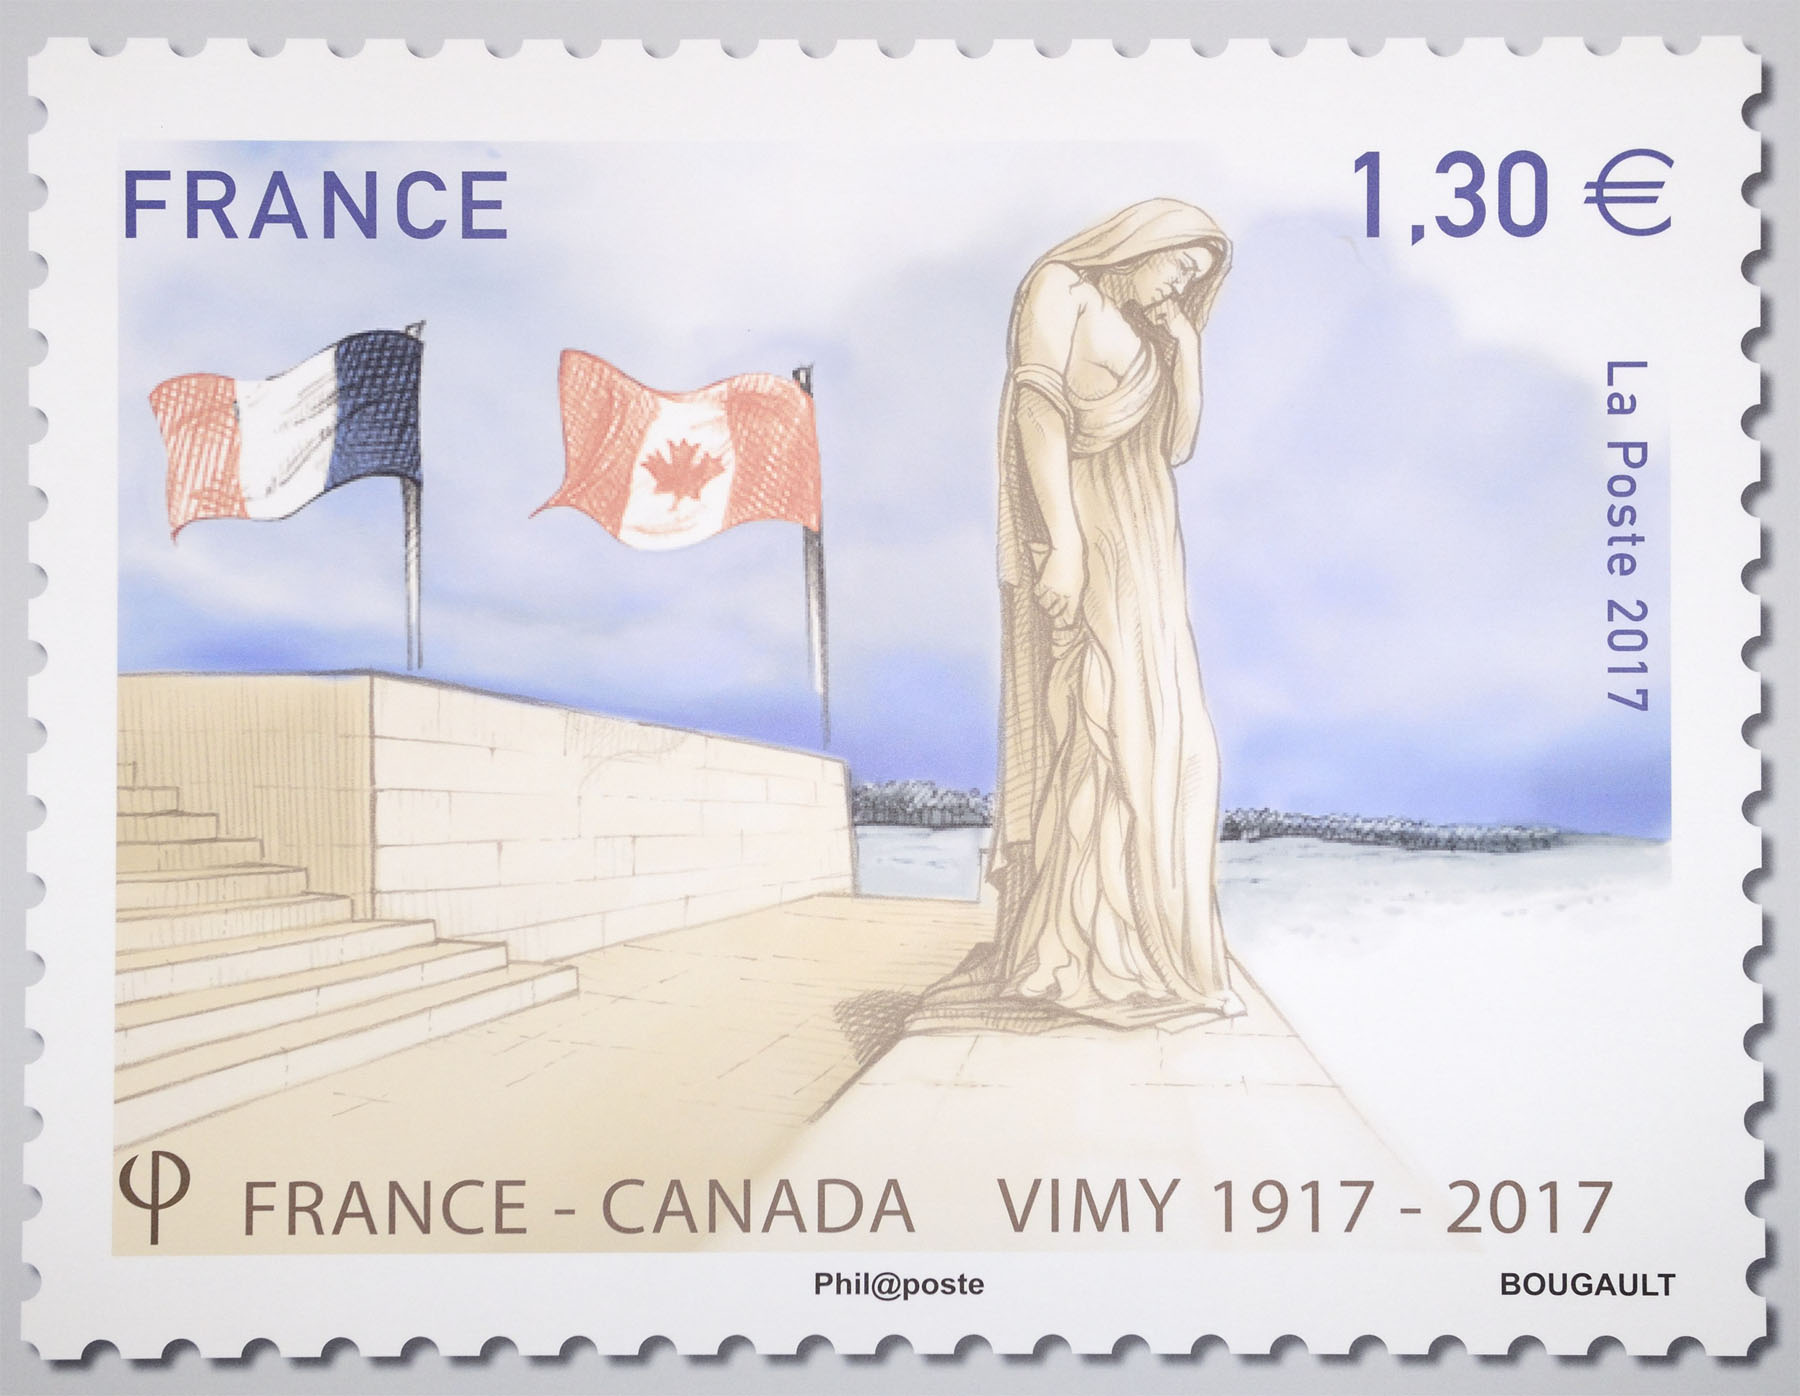 The French stamp was created by French artist Sarah Bougault to honour the bond that the battle on French soil forged between the two nations.